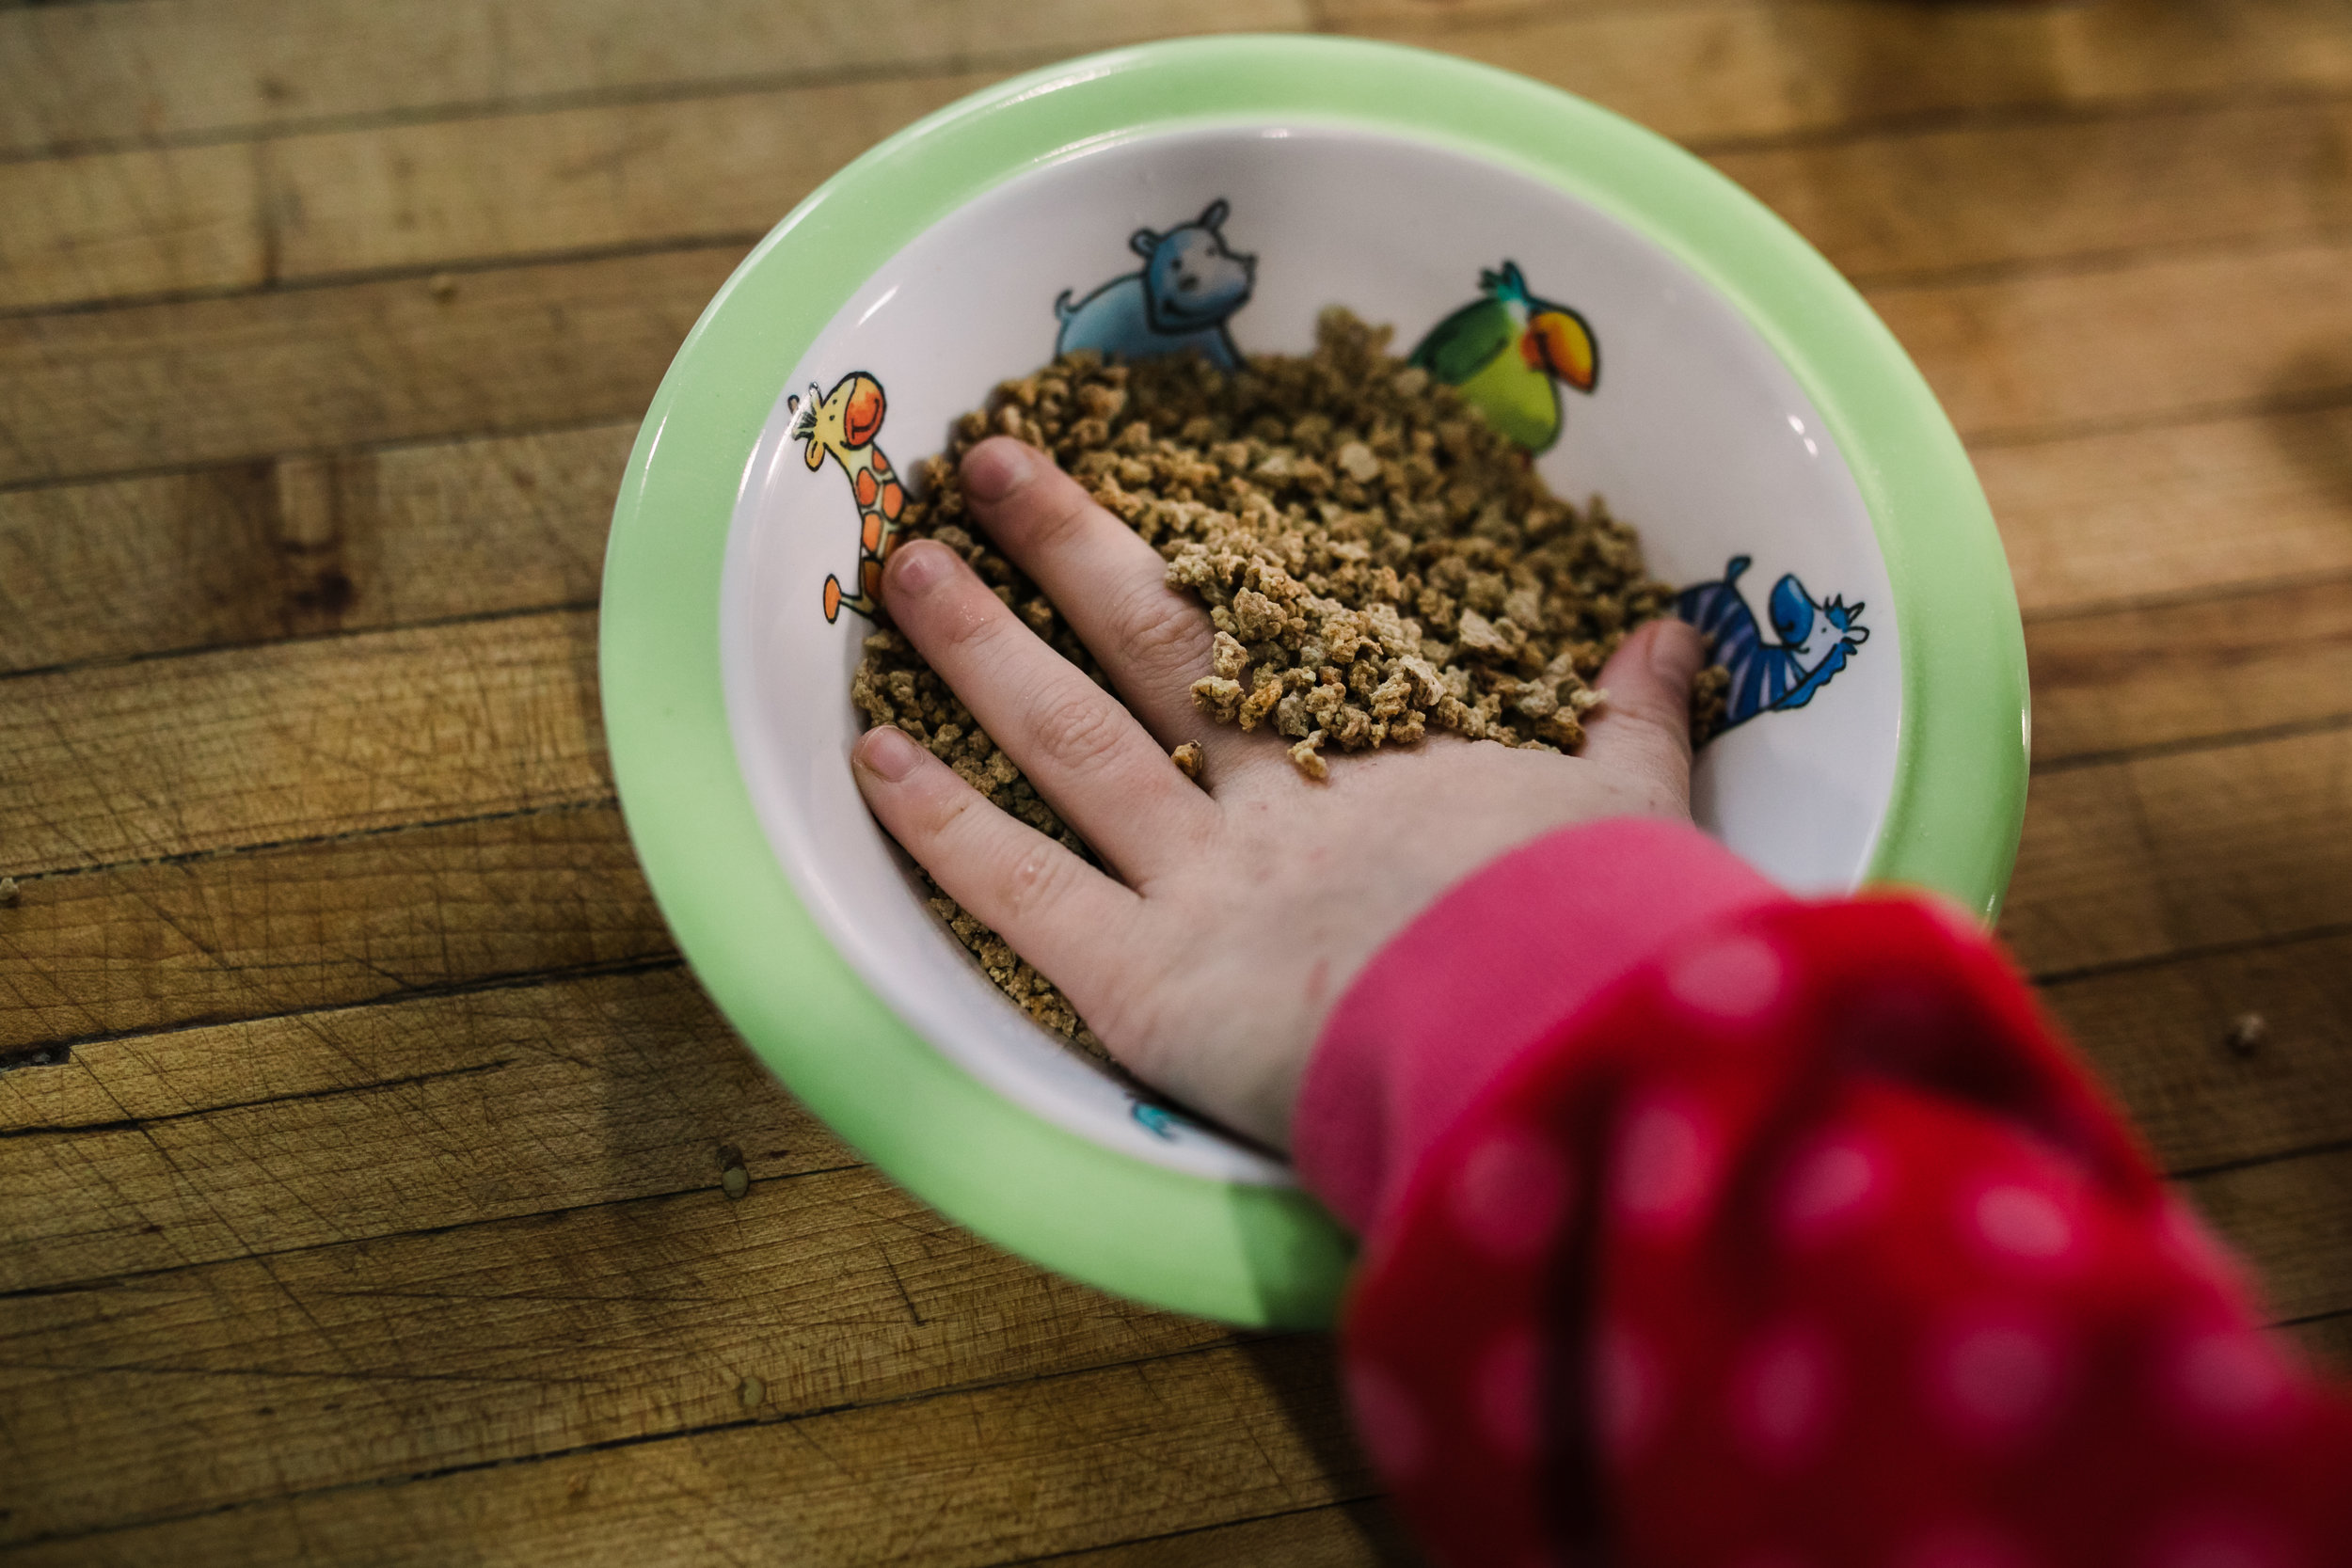 Child puts hand into a plastic bowl of Grapenuts